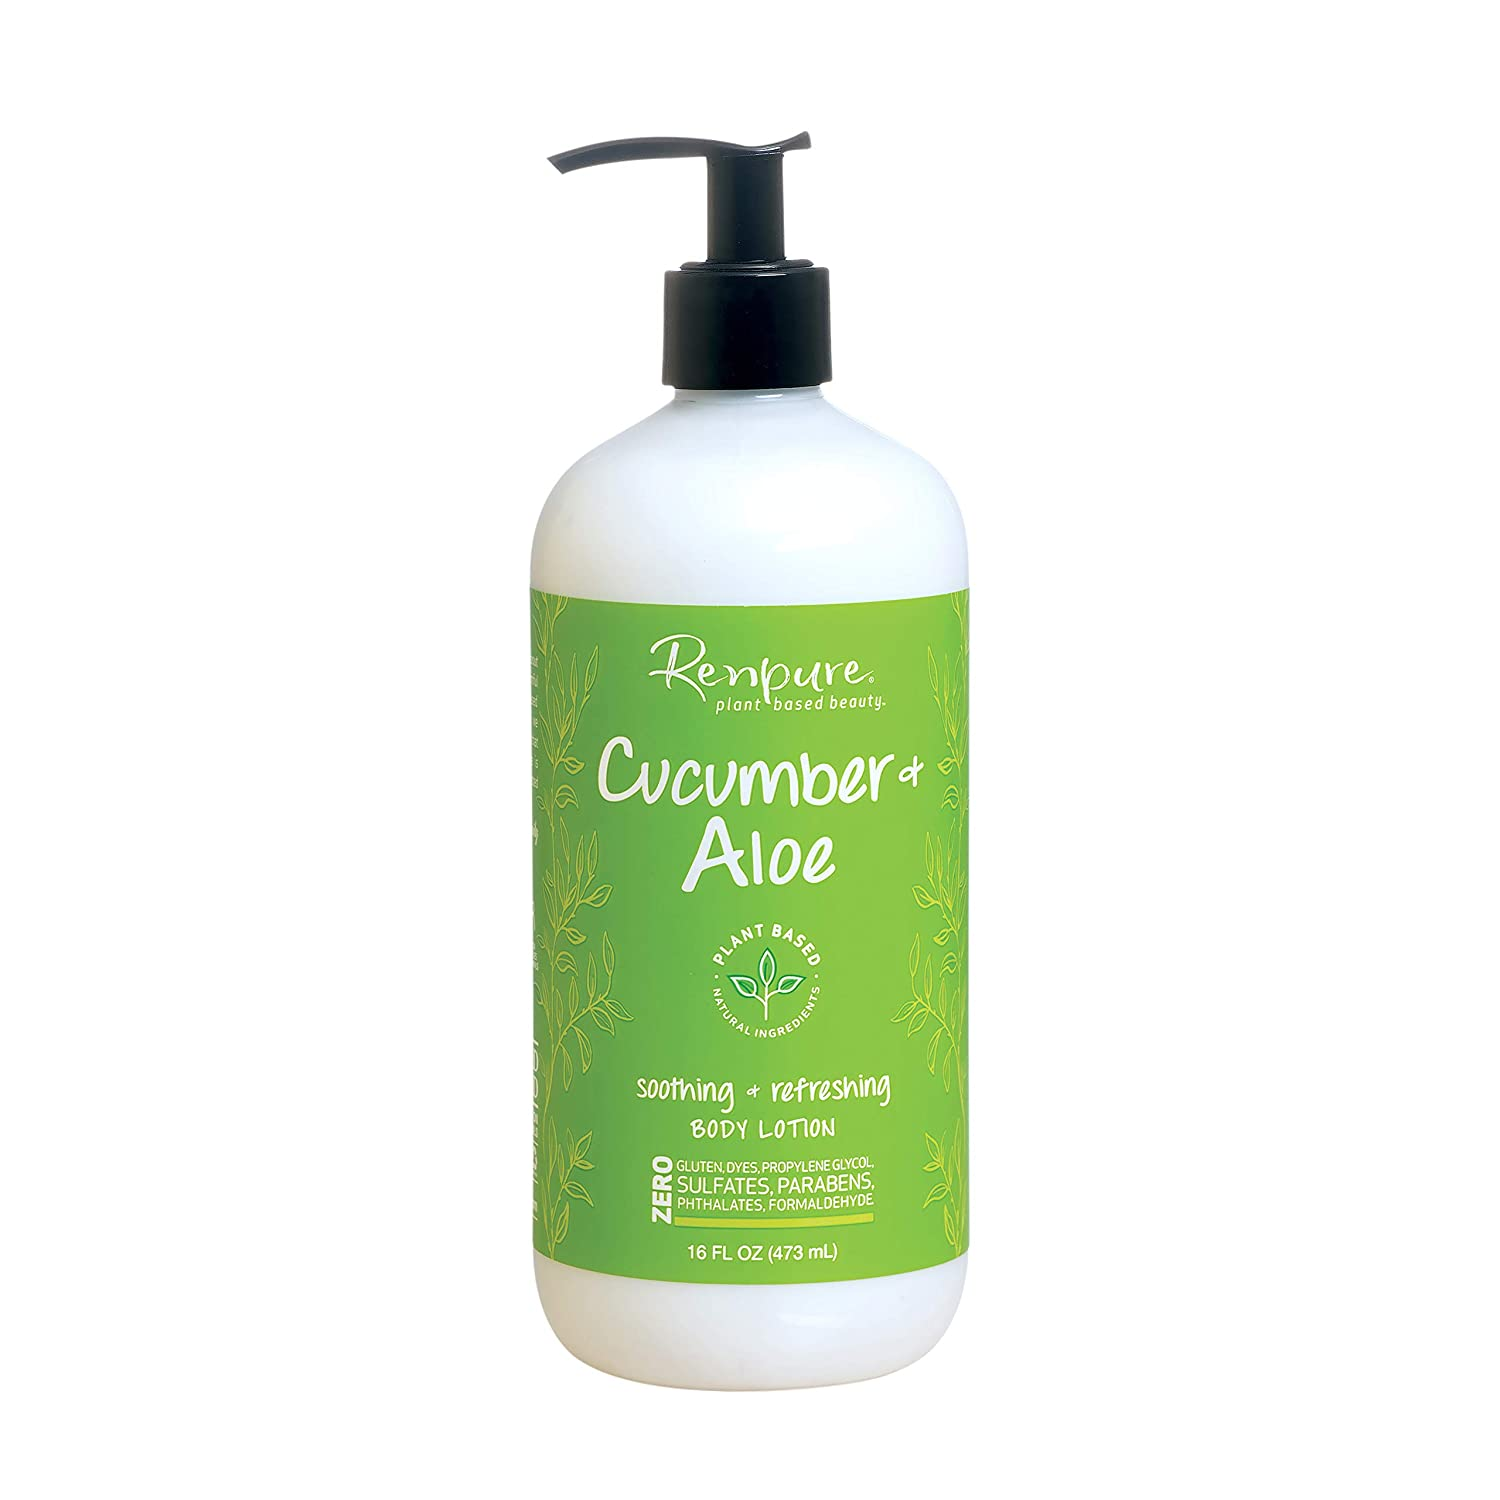 Renpure plant-based Beauty Cucumber & Aloe Soothing + Refreshing Body Lotion